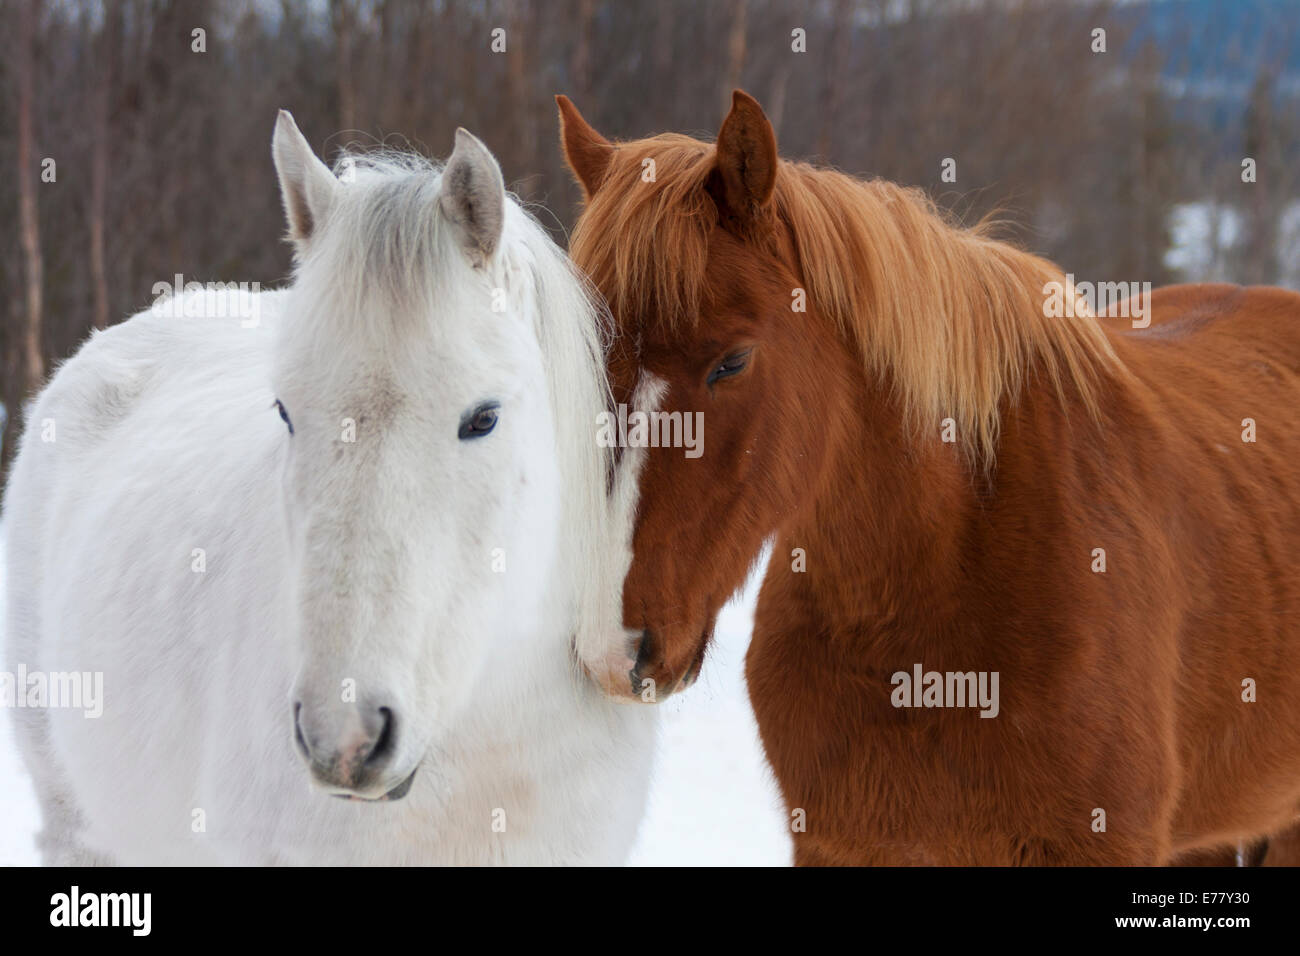 Two icelandic horses standing close together in Skaulo in Swedish lapland - Stock Image